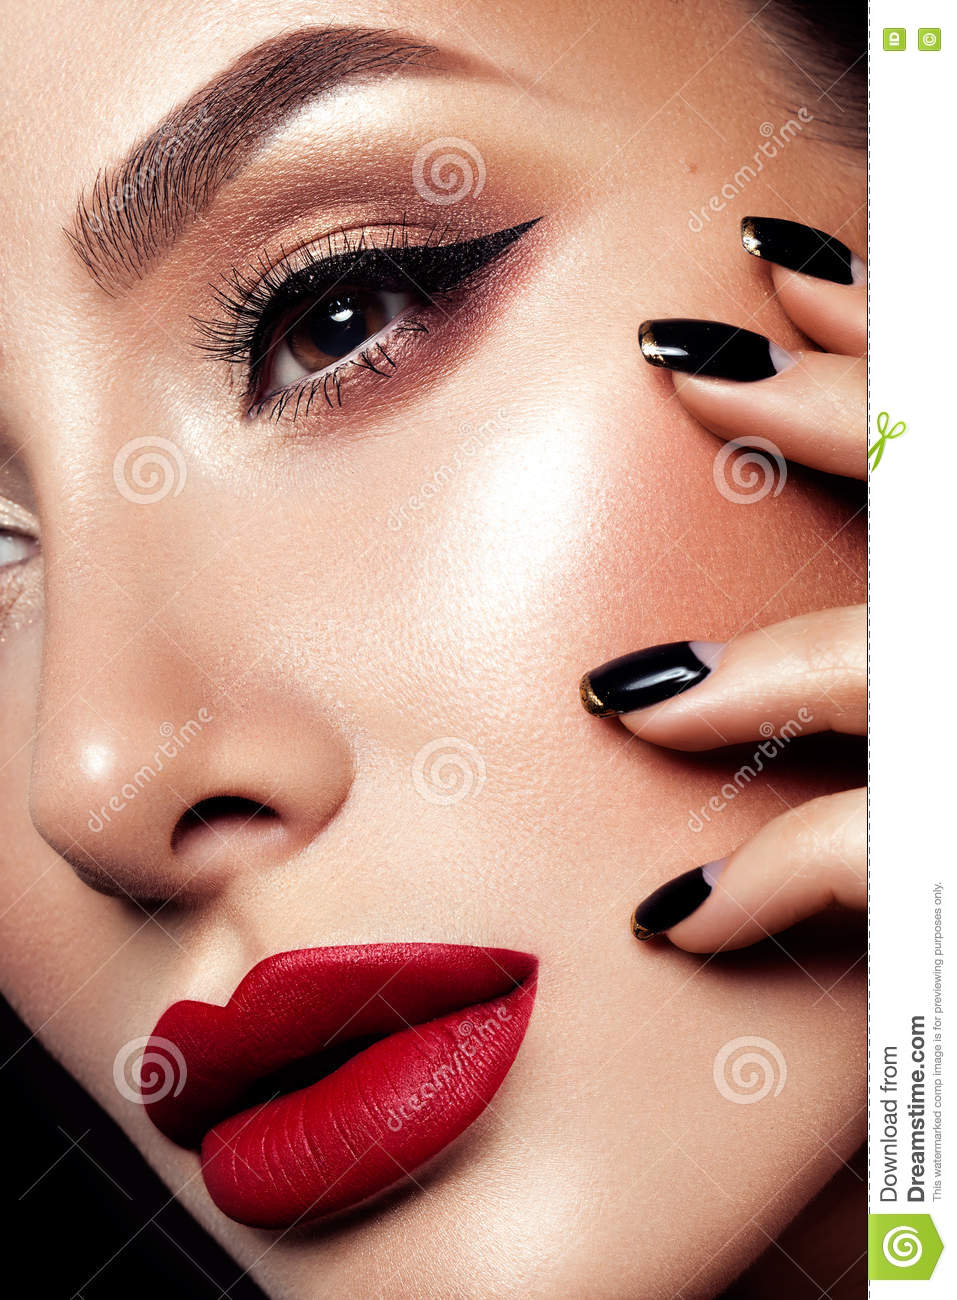 Close-up shot of woman lips with red lipstick.